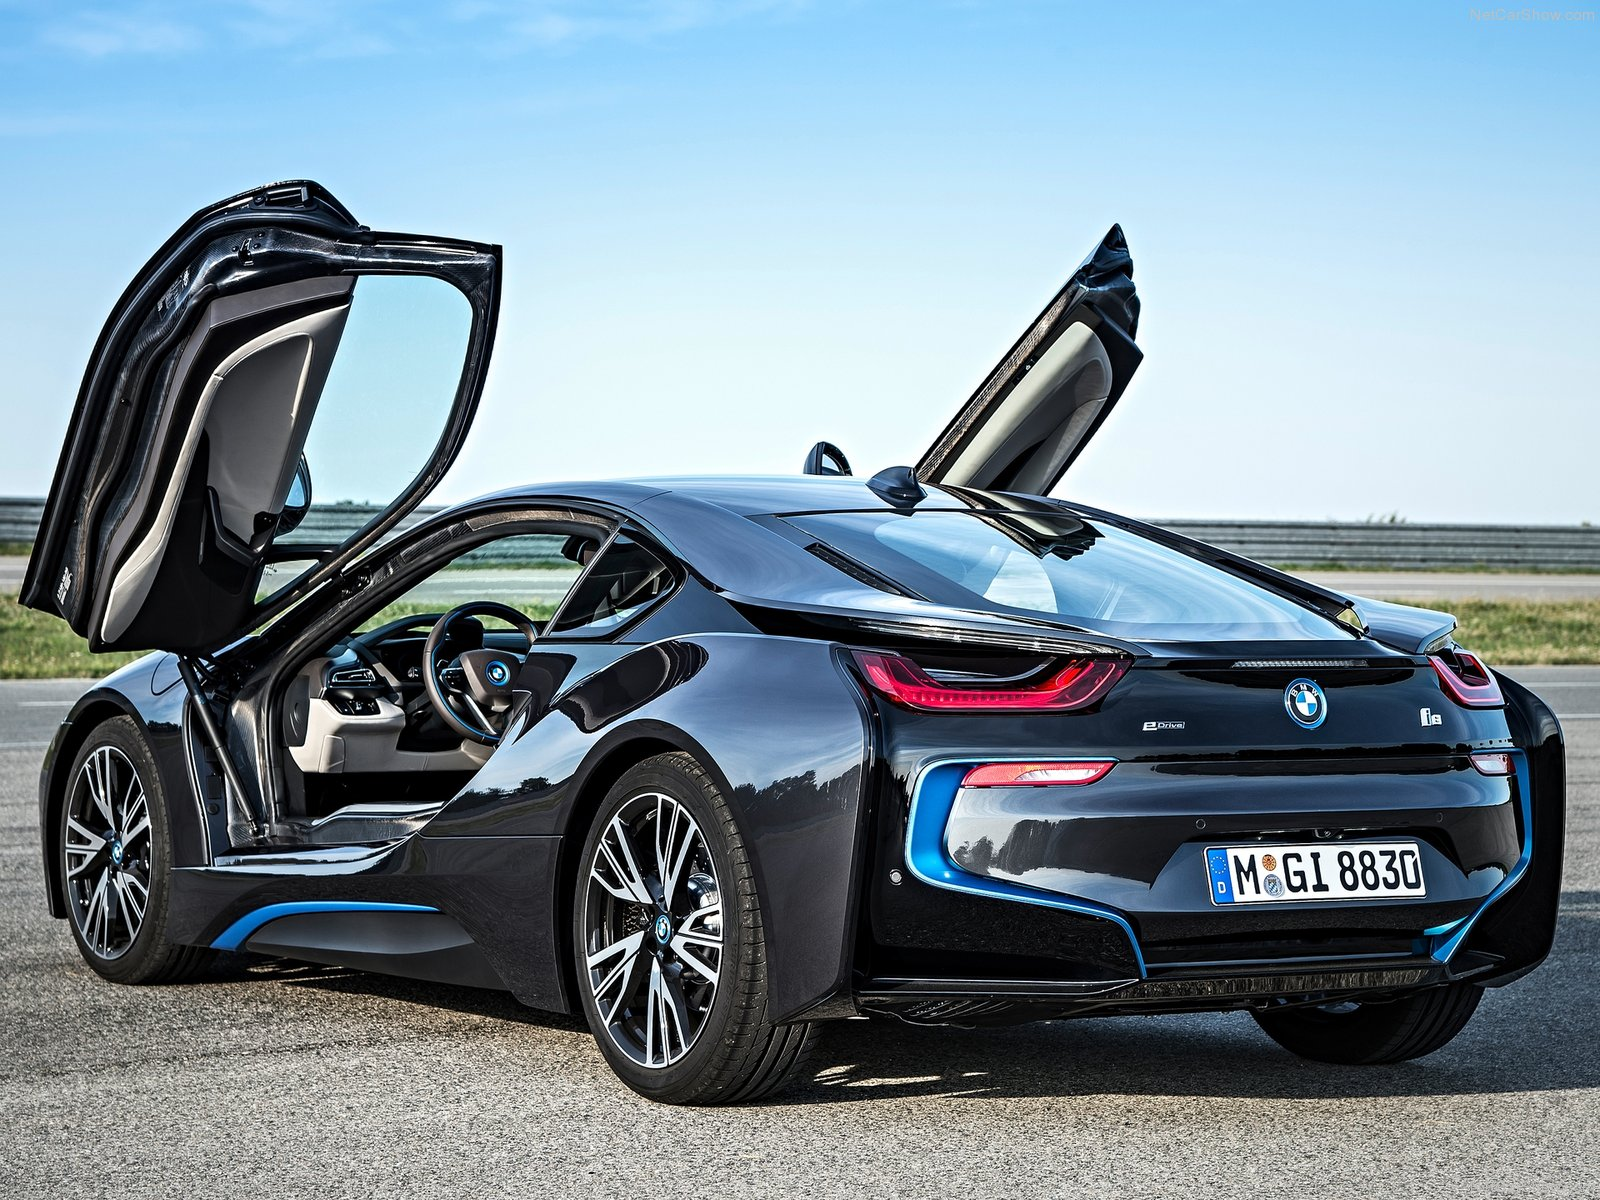 Bmw i8 Magazine Bmw i8 One of Car Magazine's